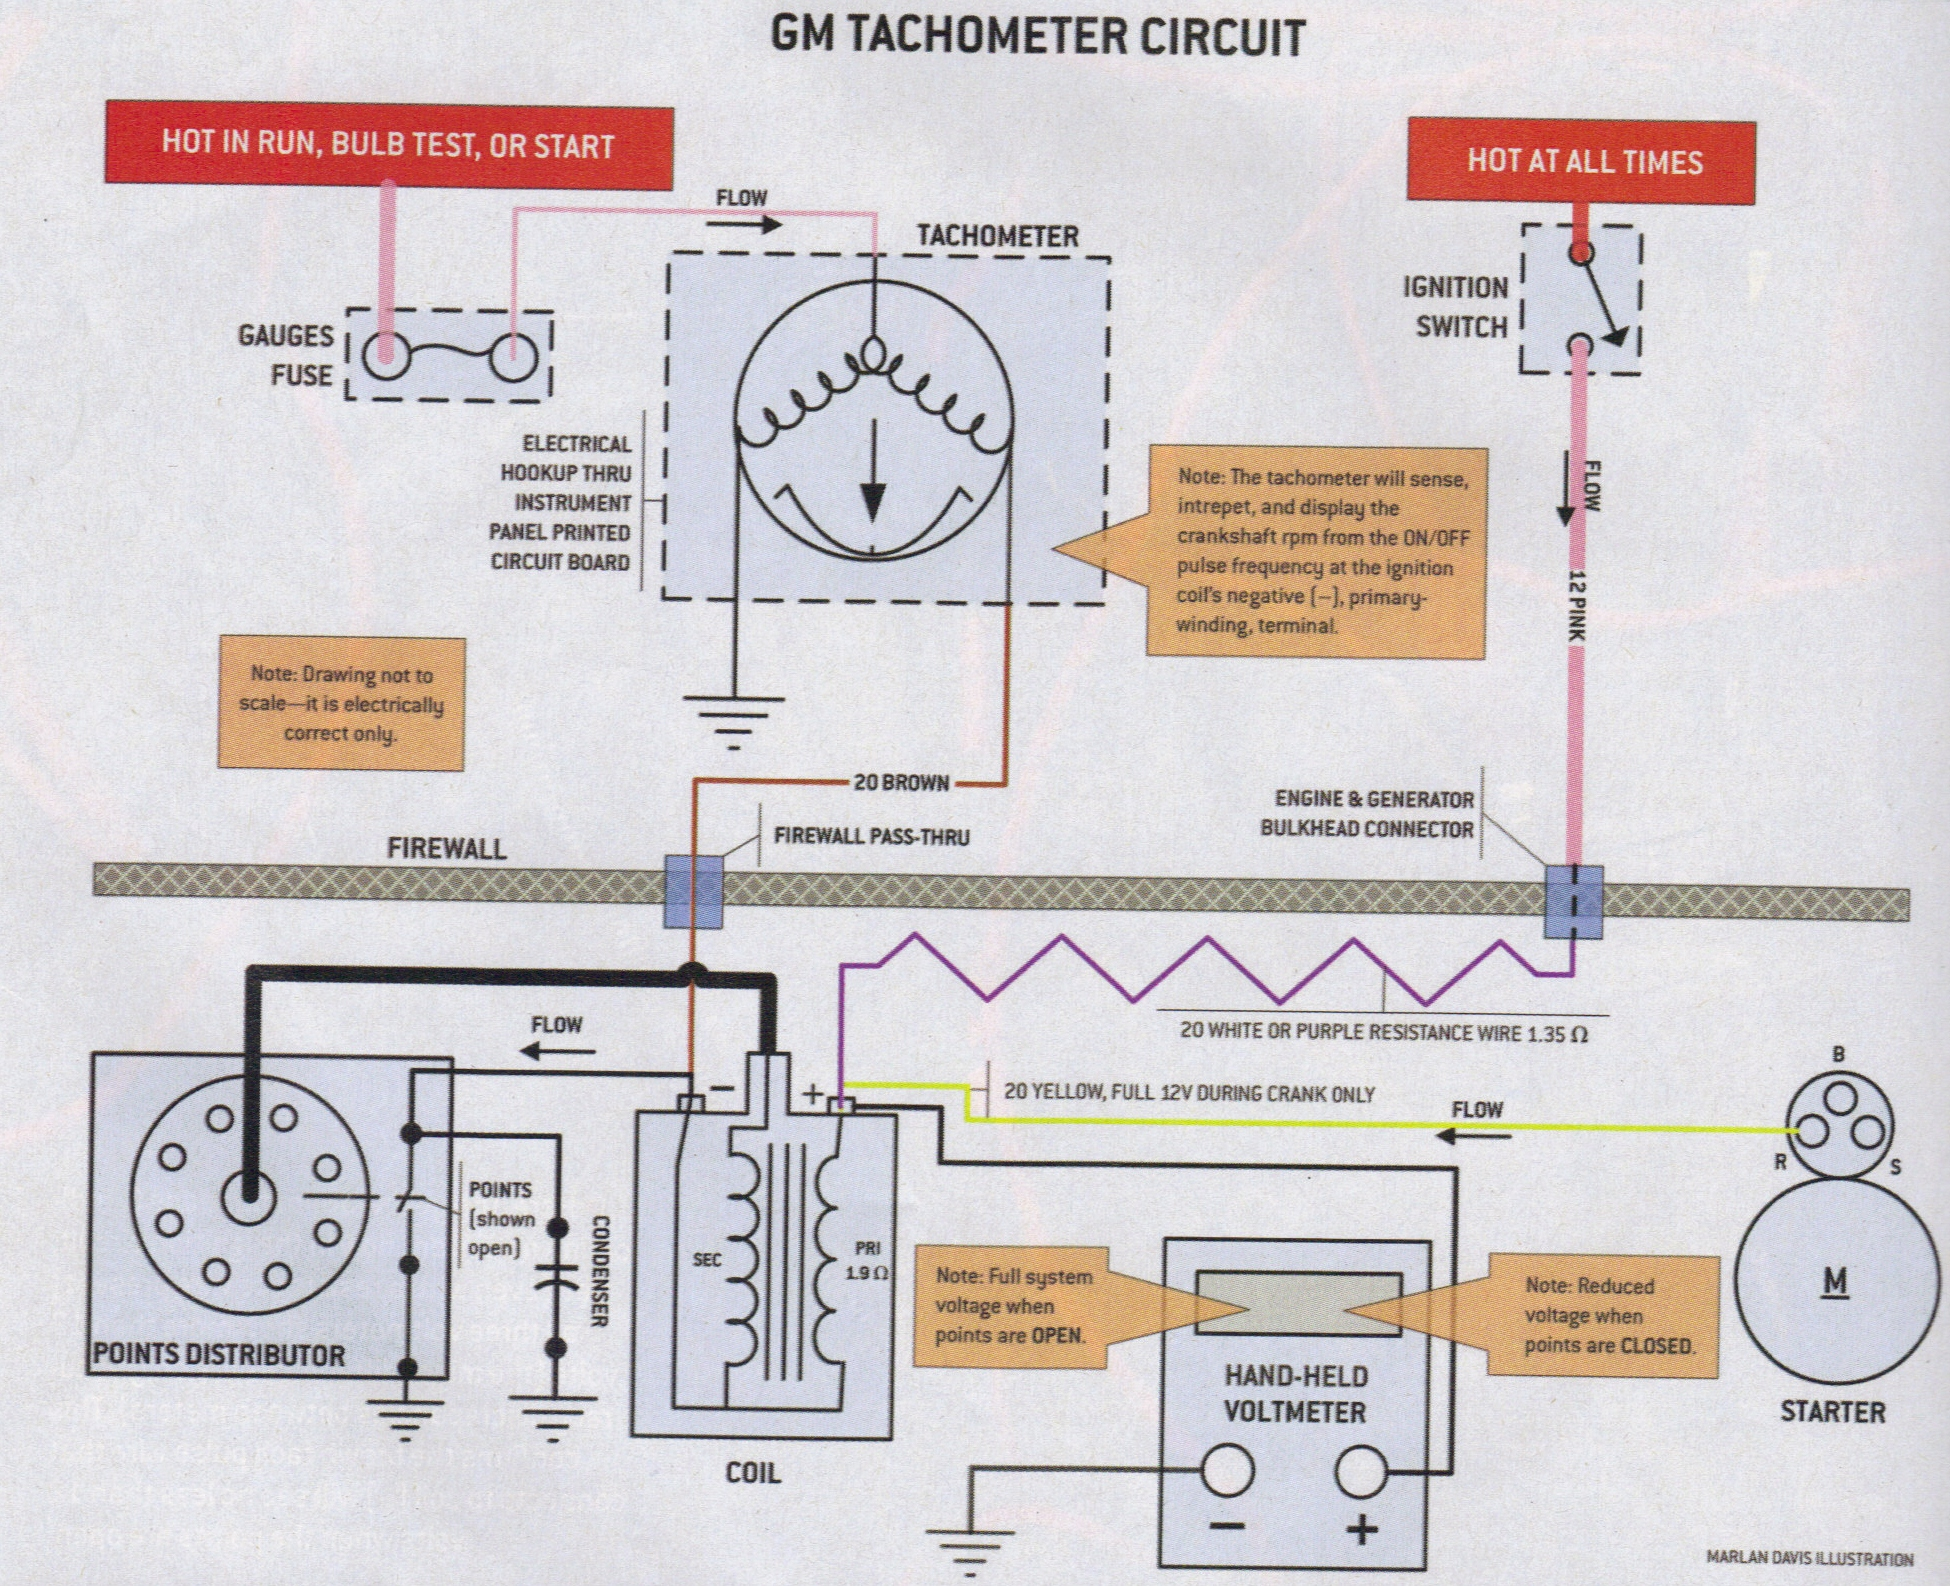 wiring diagram for a 1972 chevelle tach   39 wiring